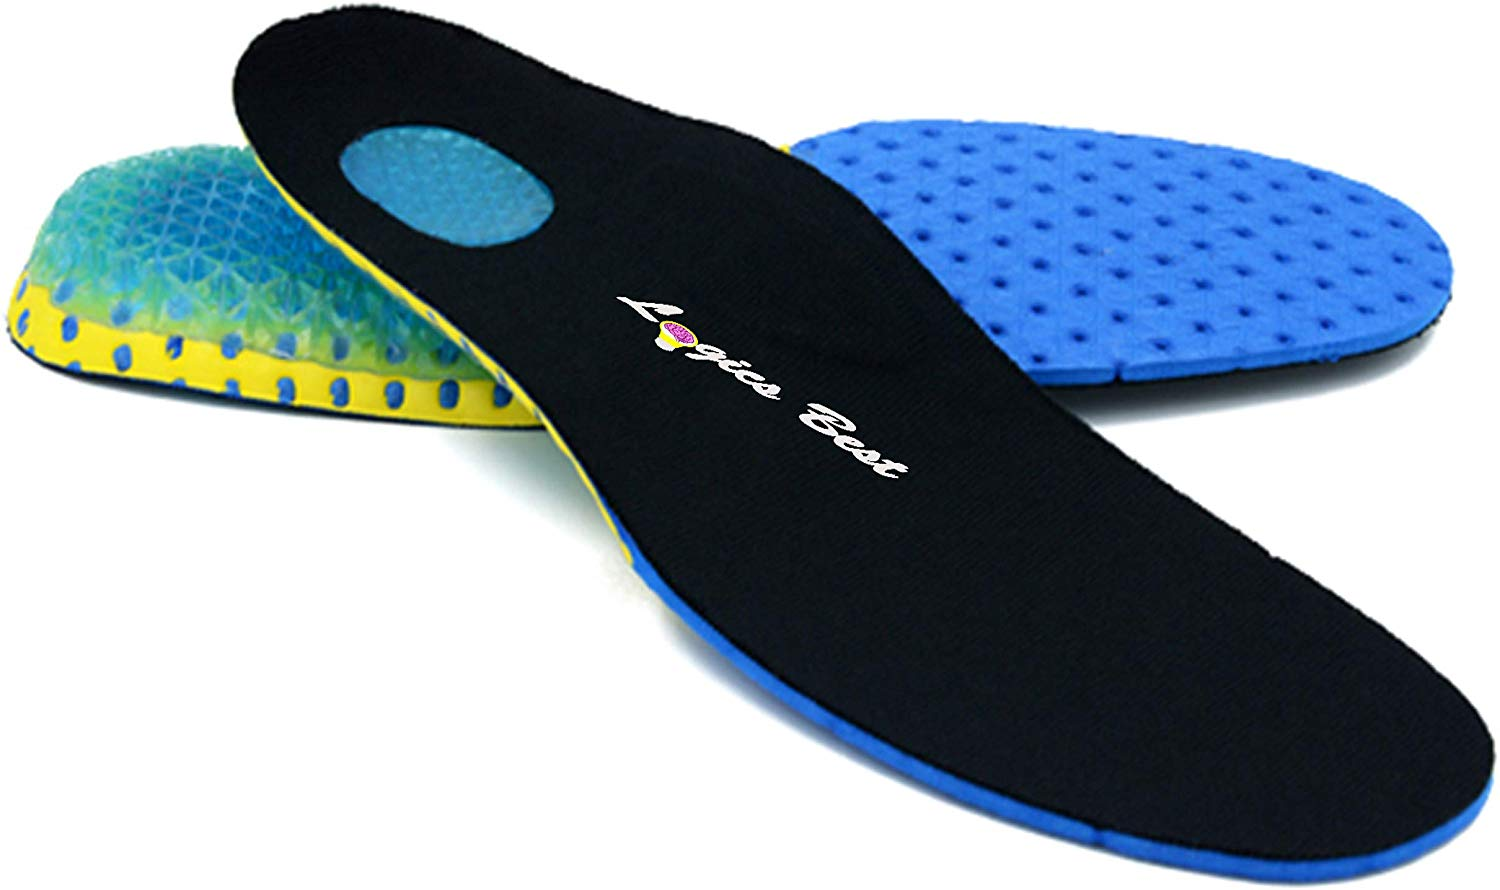 Pain Relief Insoles for Athletes, Shock Absorbing Insert for Maximum Support, Unisex, Anti-Fatigue Technology Replacement Insole